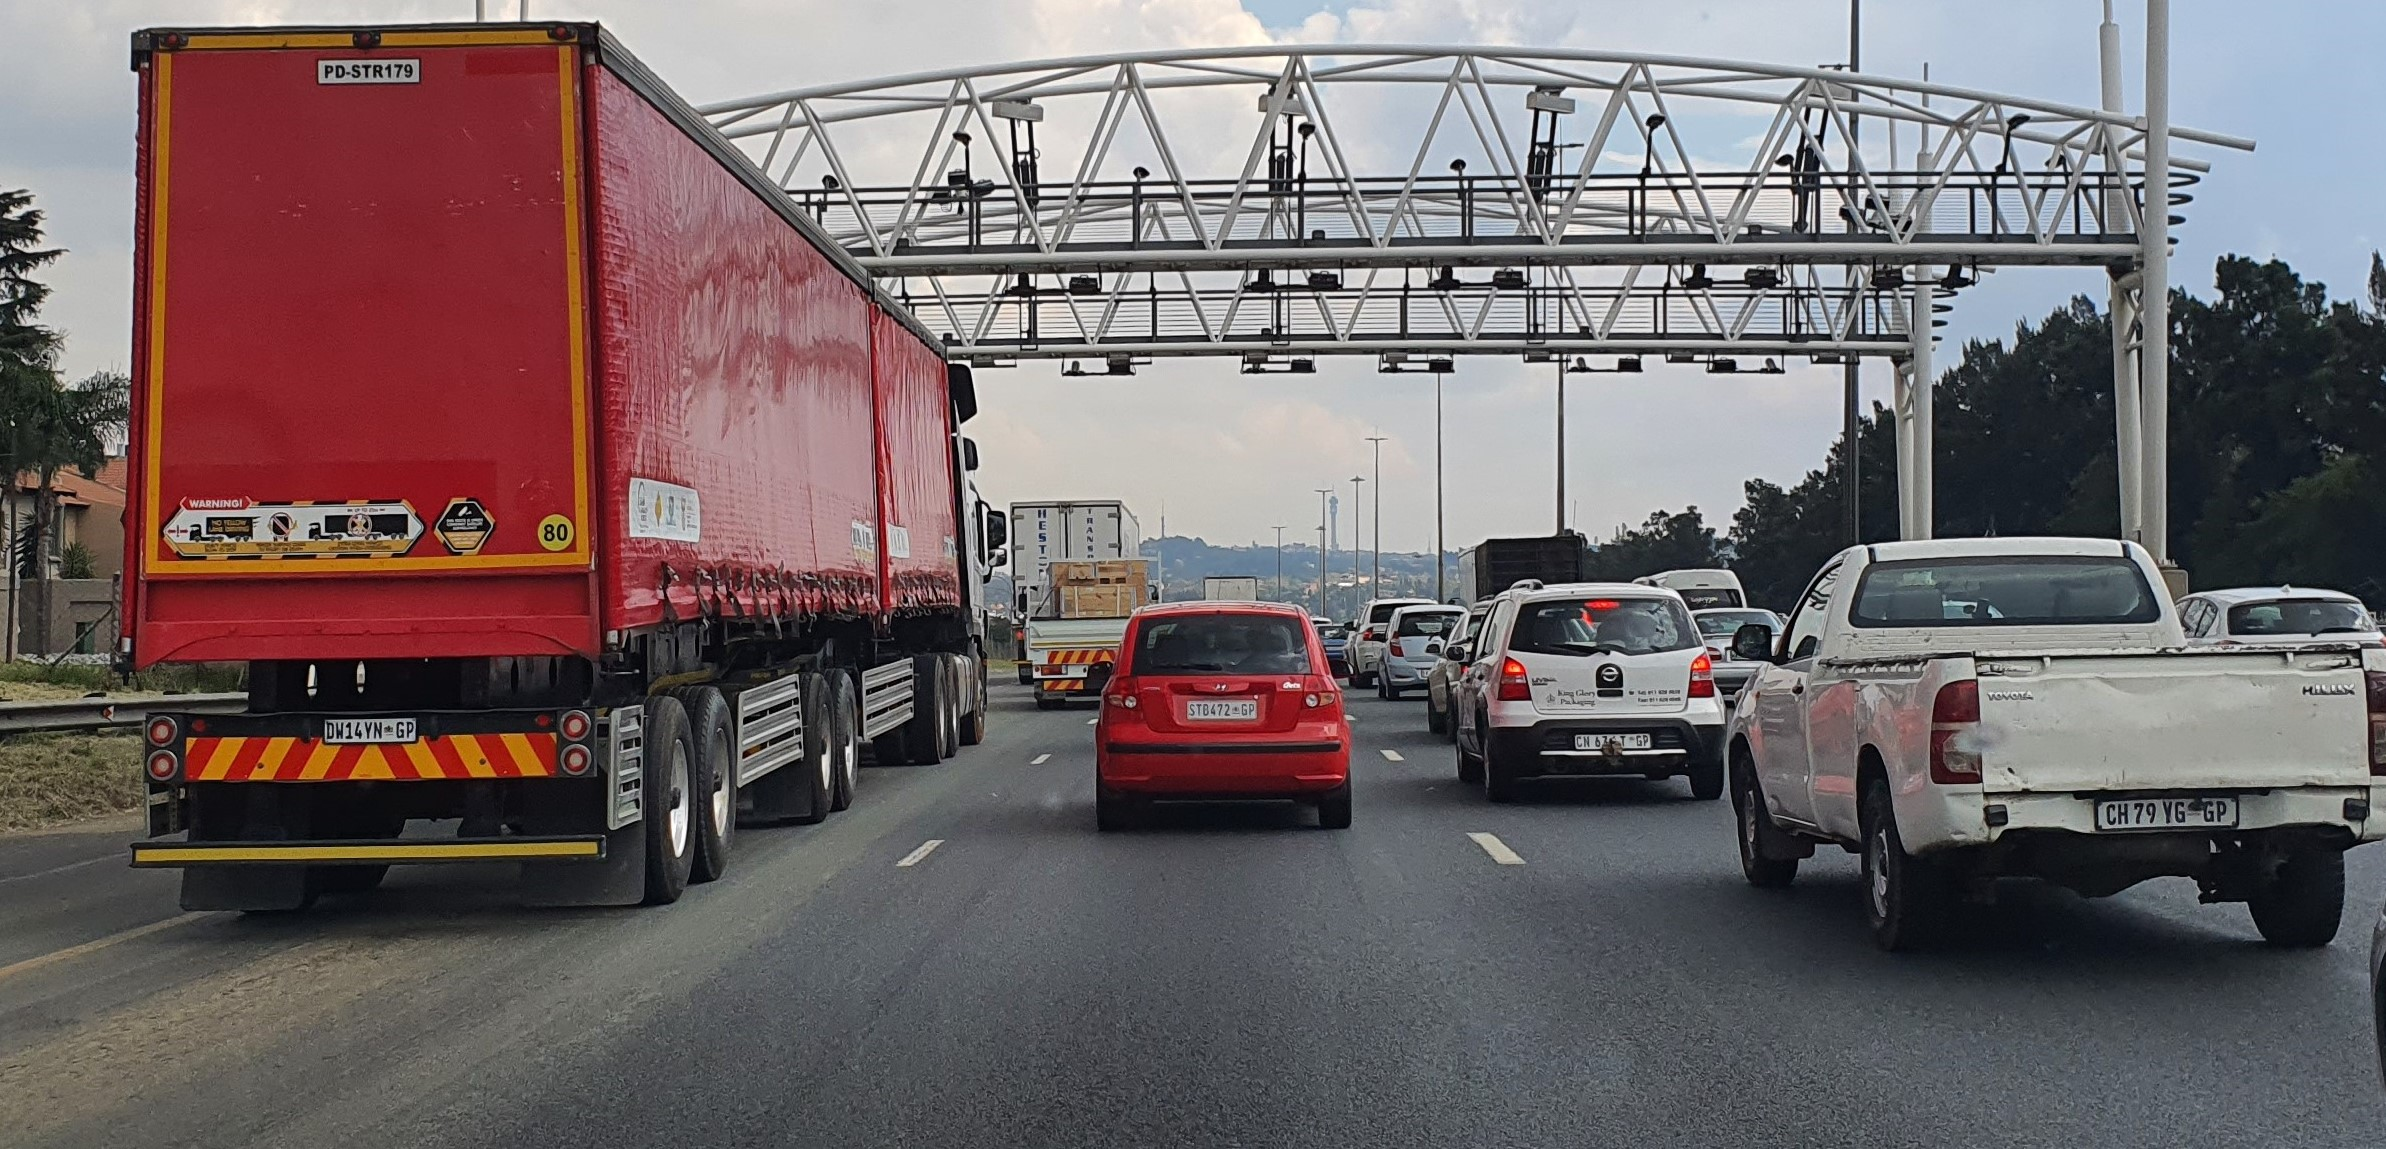 """""""The fact that Minister Mbalula missed yet another deadline to address the future of the eTolls system in Gauteng is dismaying, casting even more doubt among road users on the way forward for this system."""" - AA"""